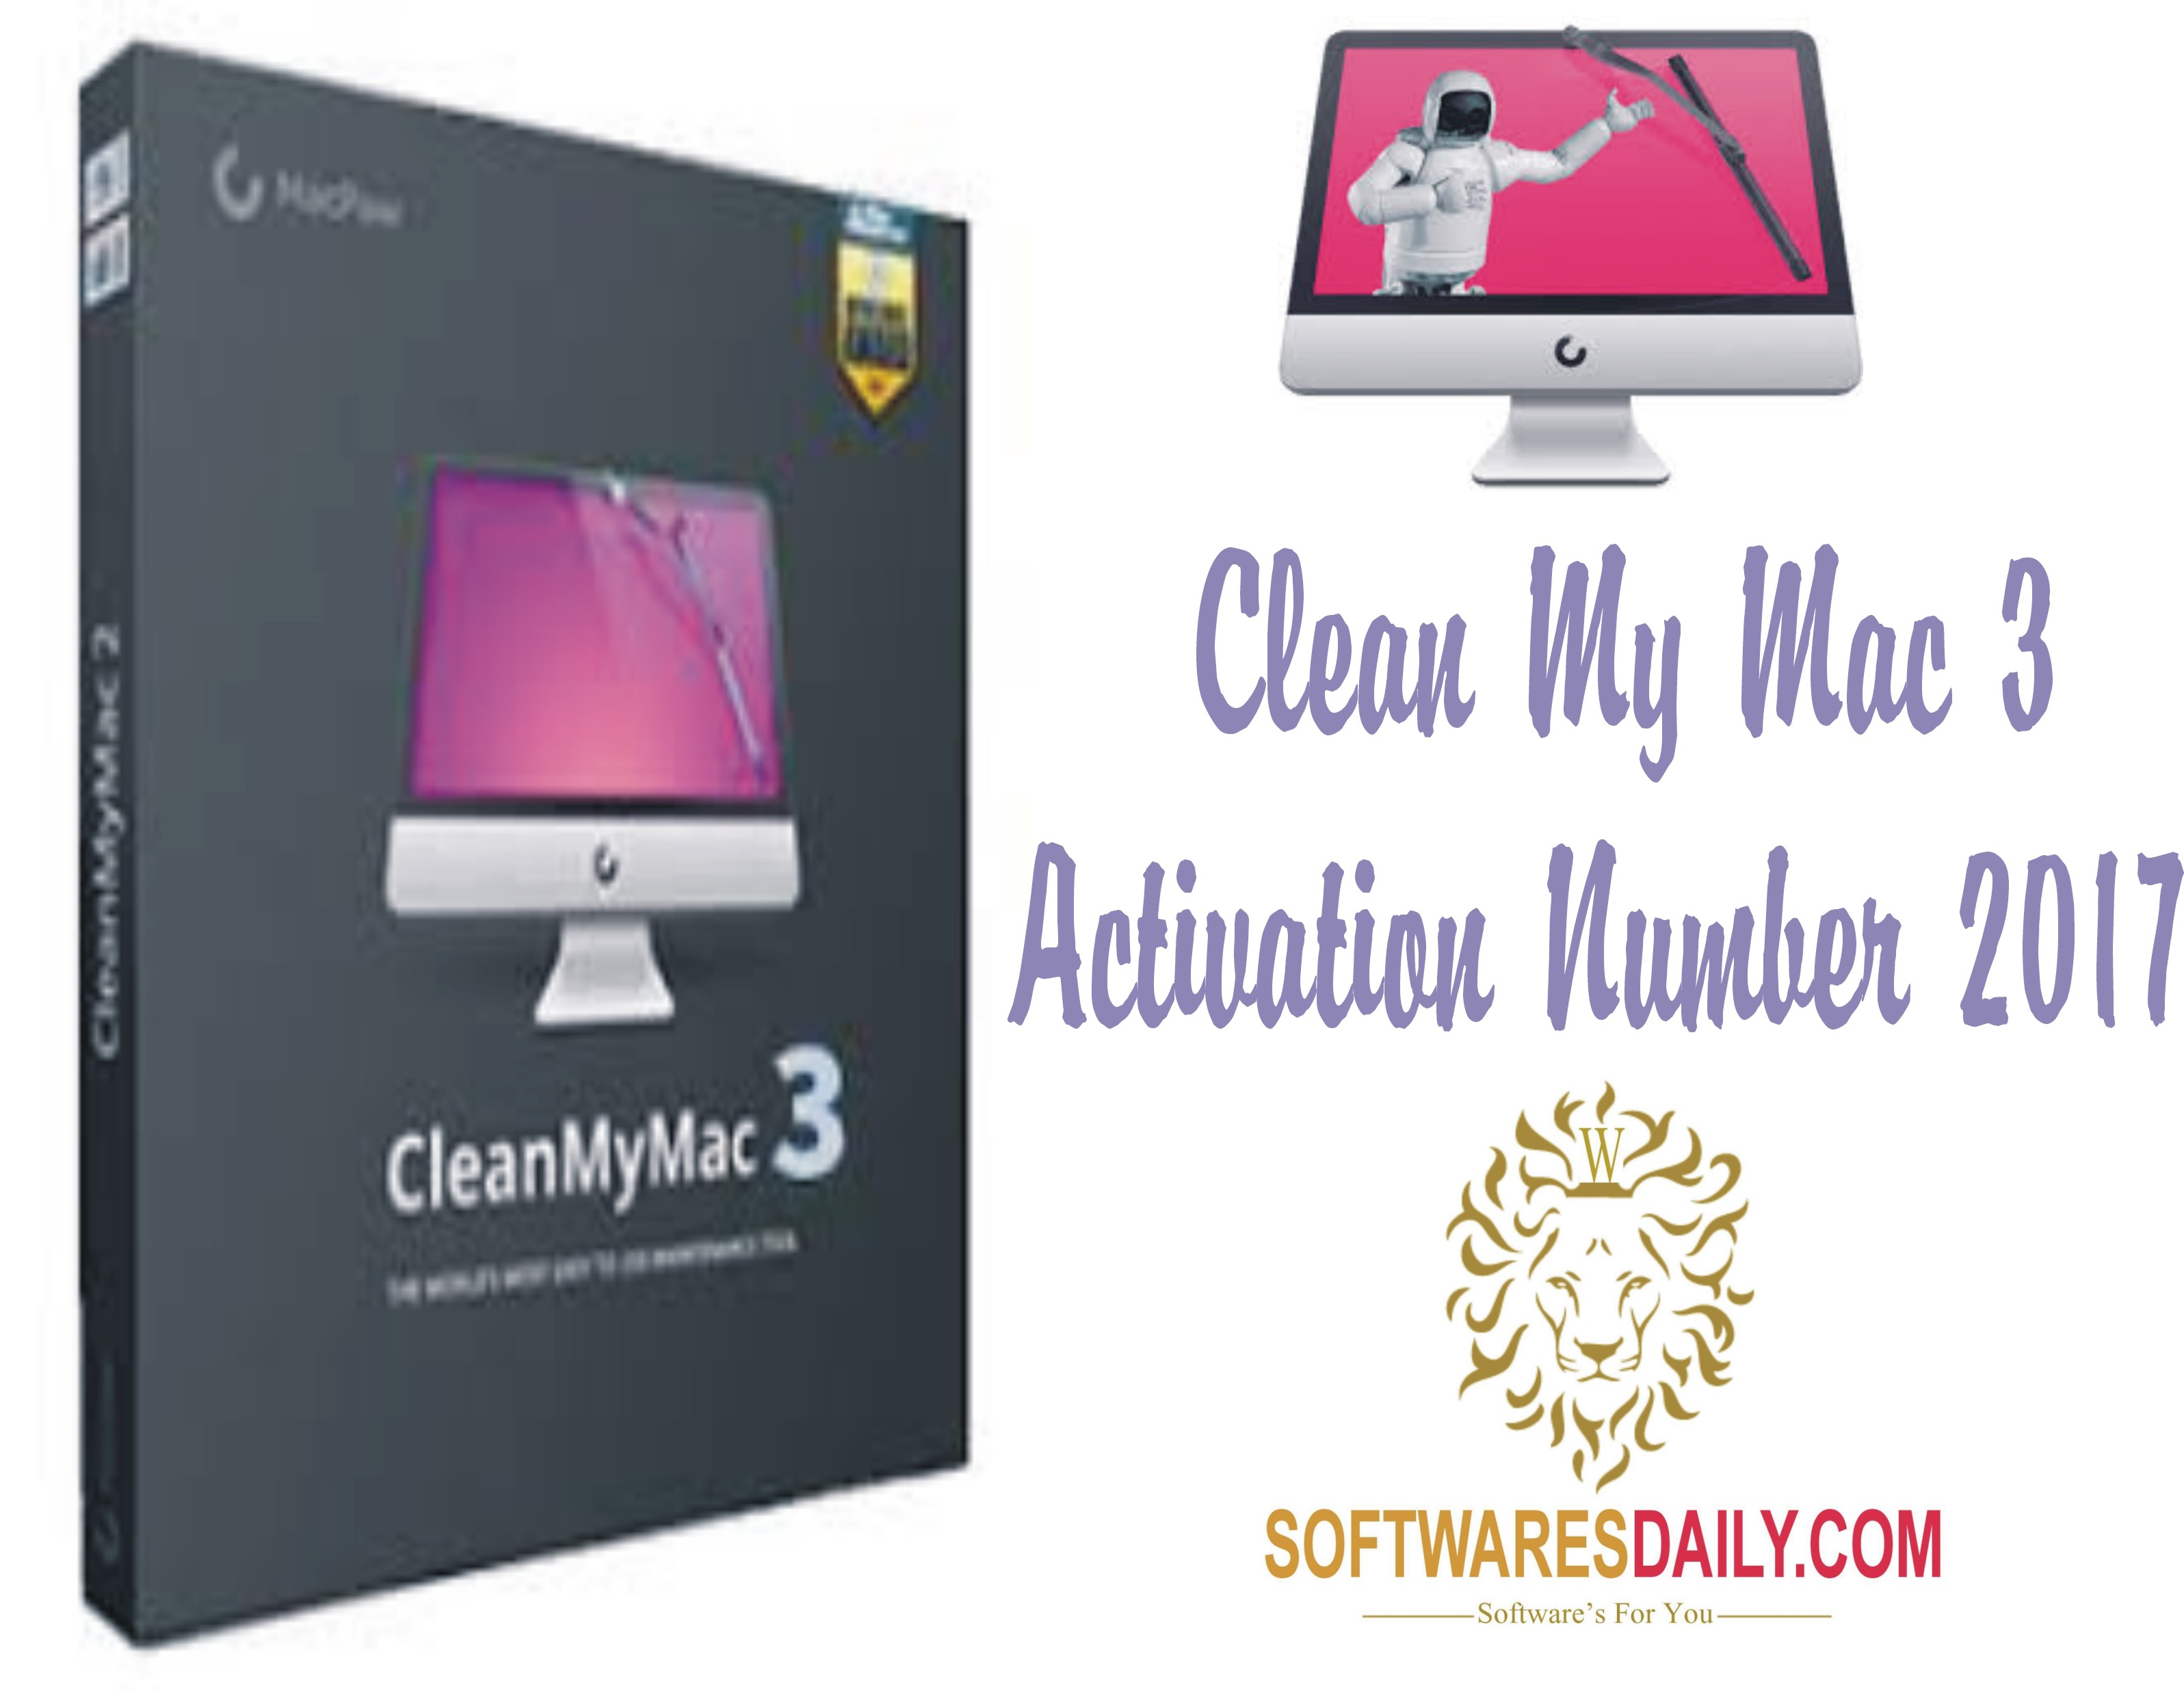 cleanmymac 3 activation code free